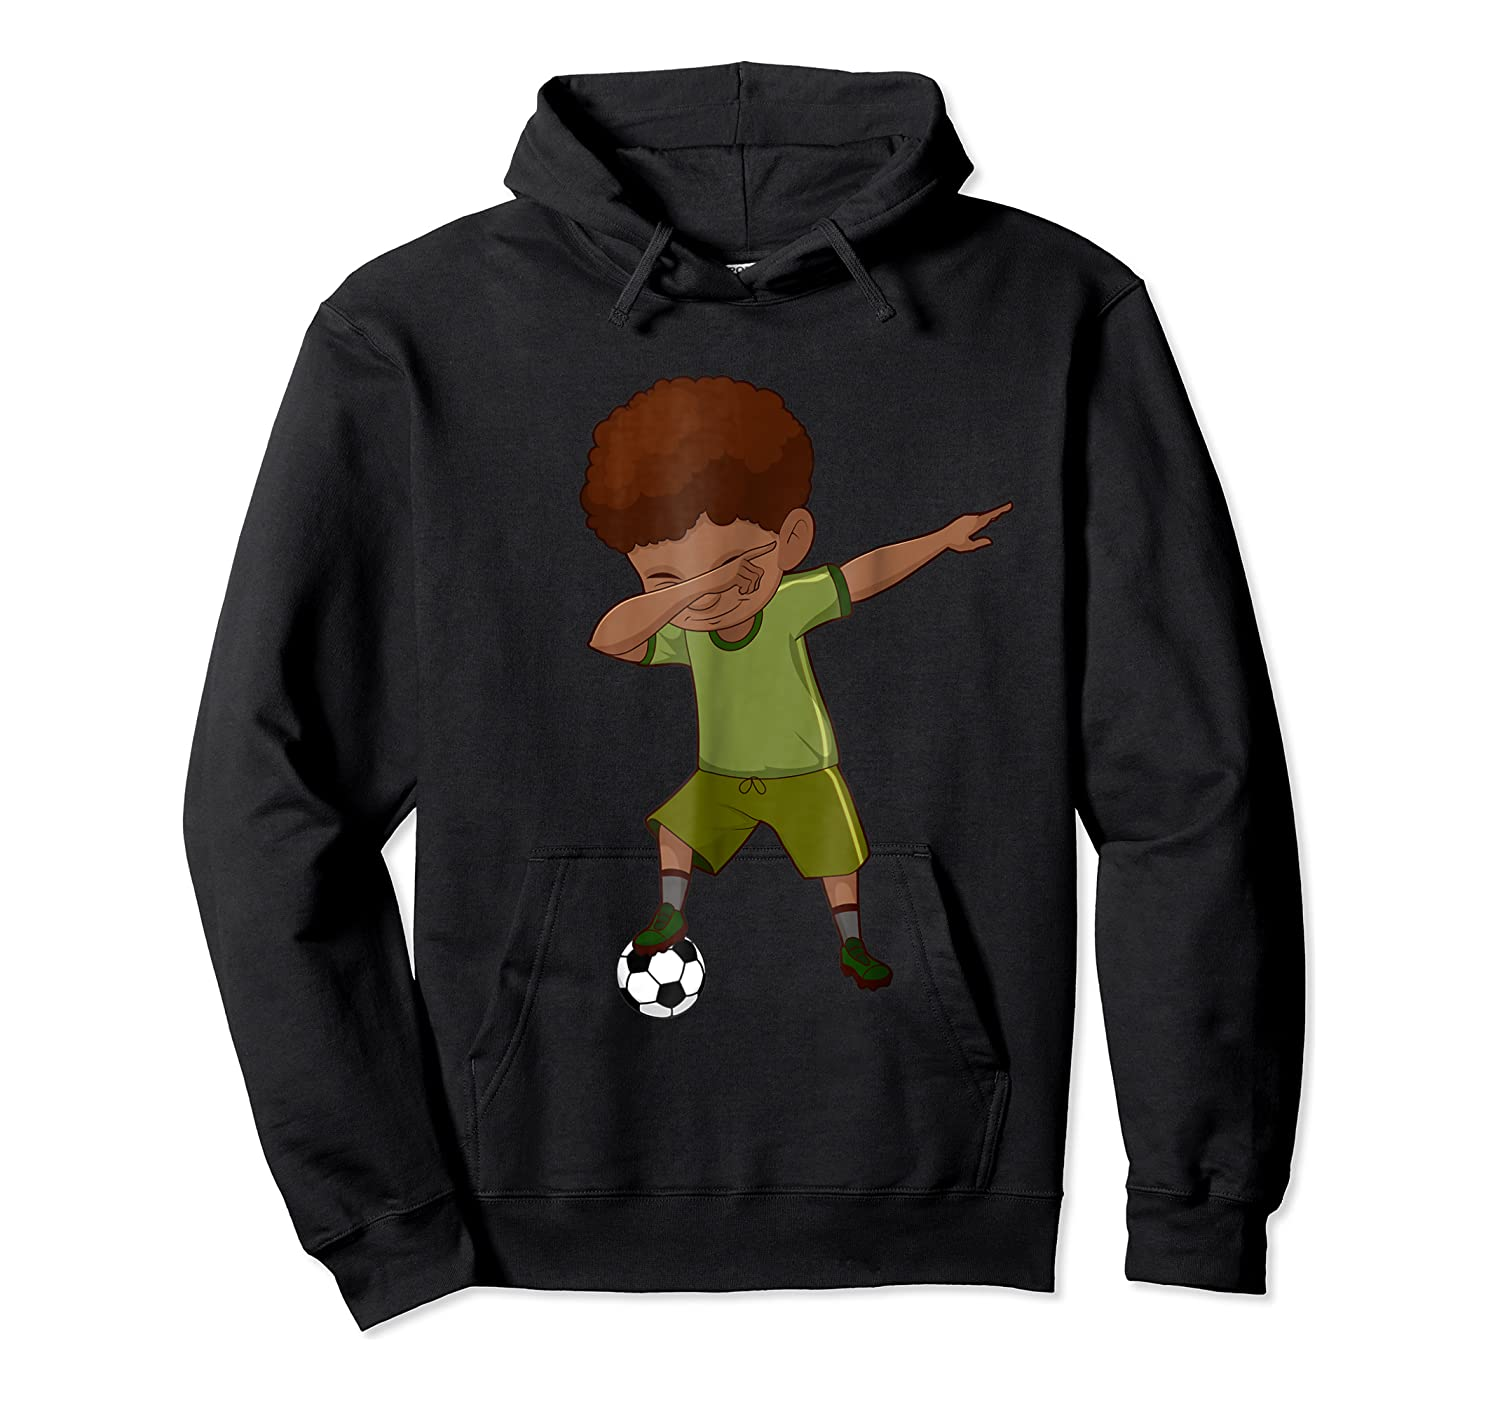 Soccer Shirt For Funny Dabbing Tee Gifts Unisex Pullover Hoodie